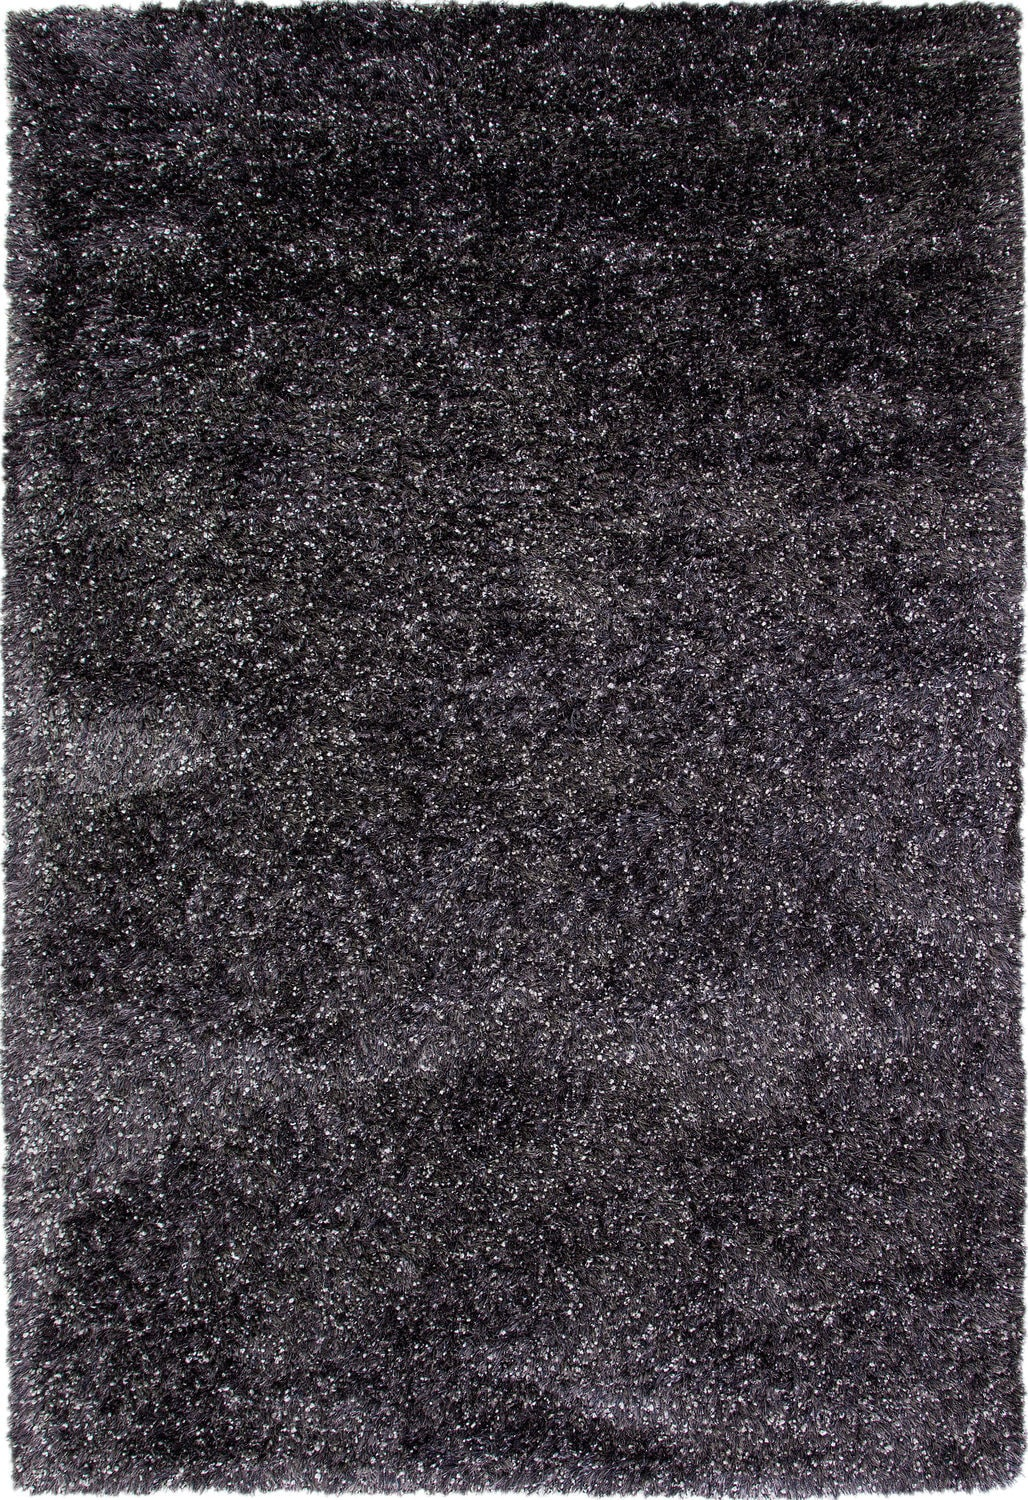 Rugs - Lifestyle Shag Area Rug - Charcoal